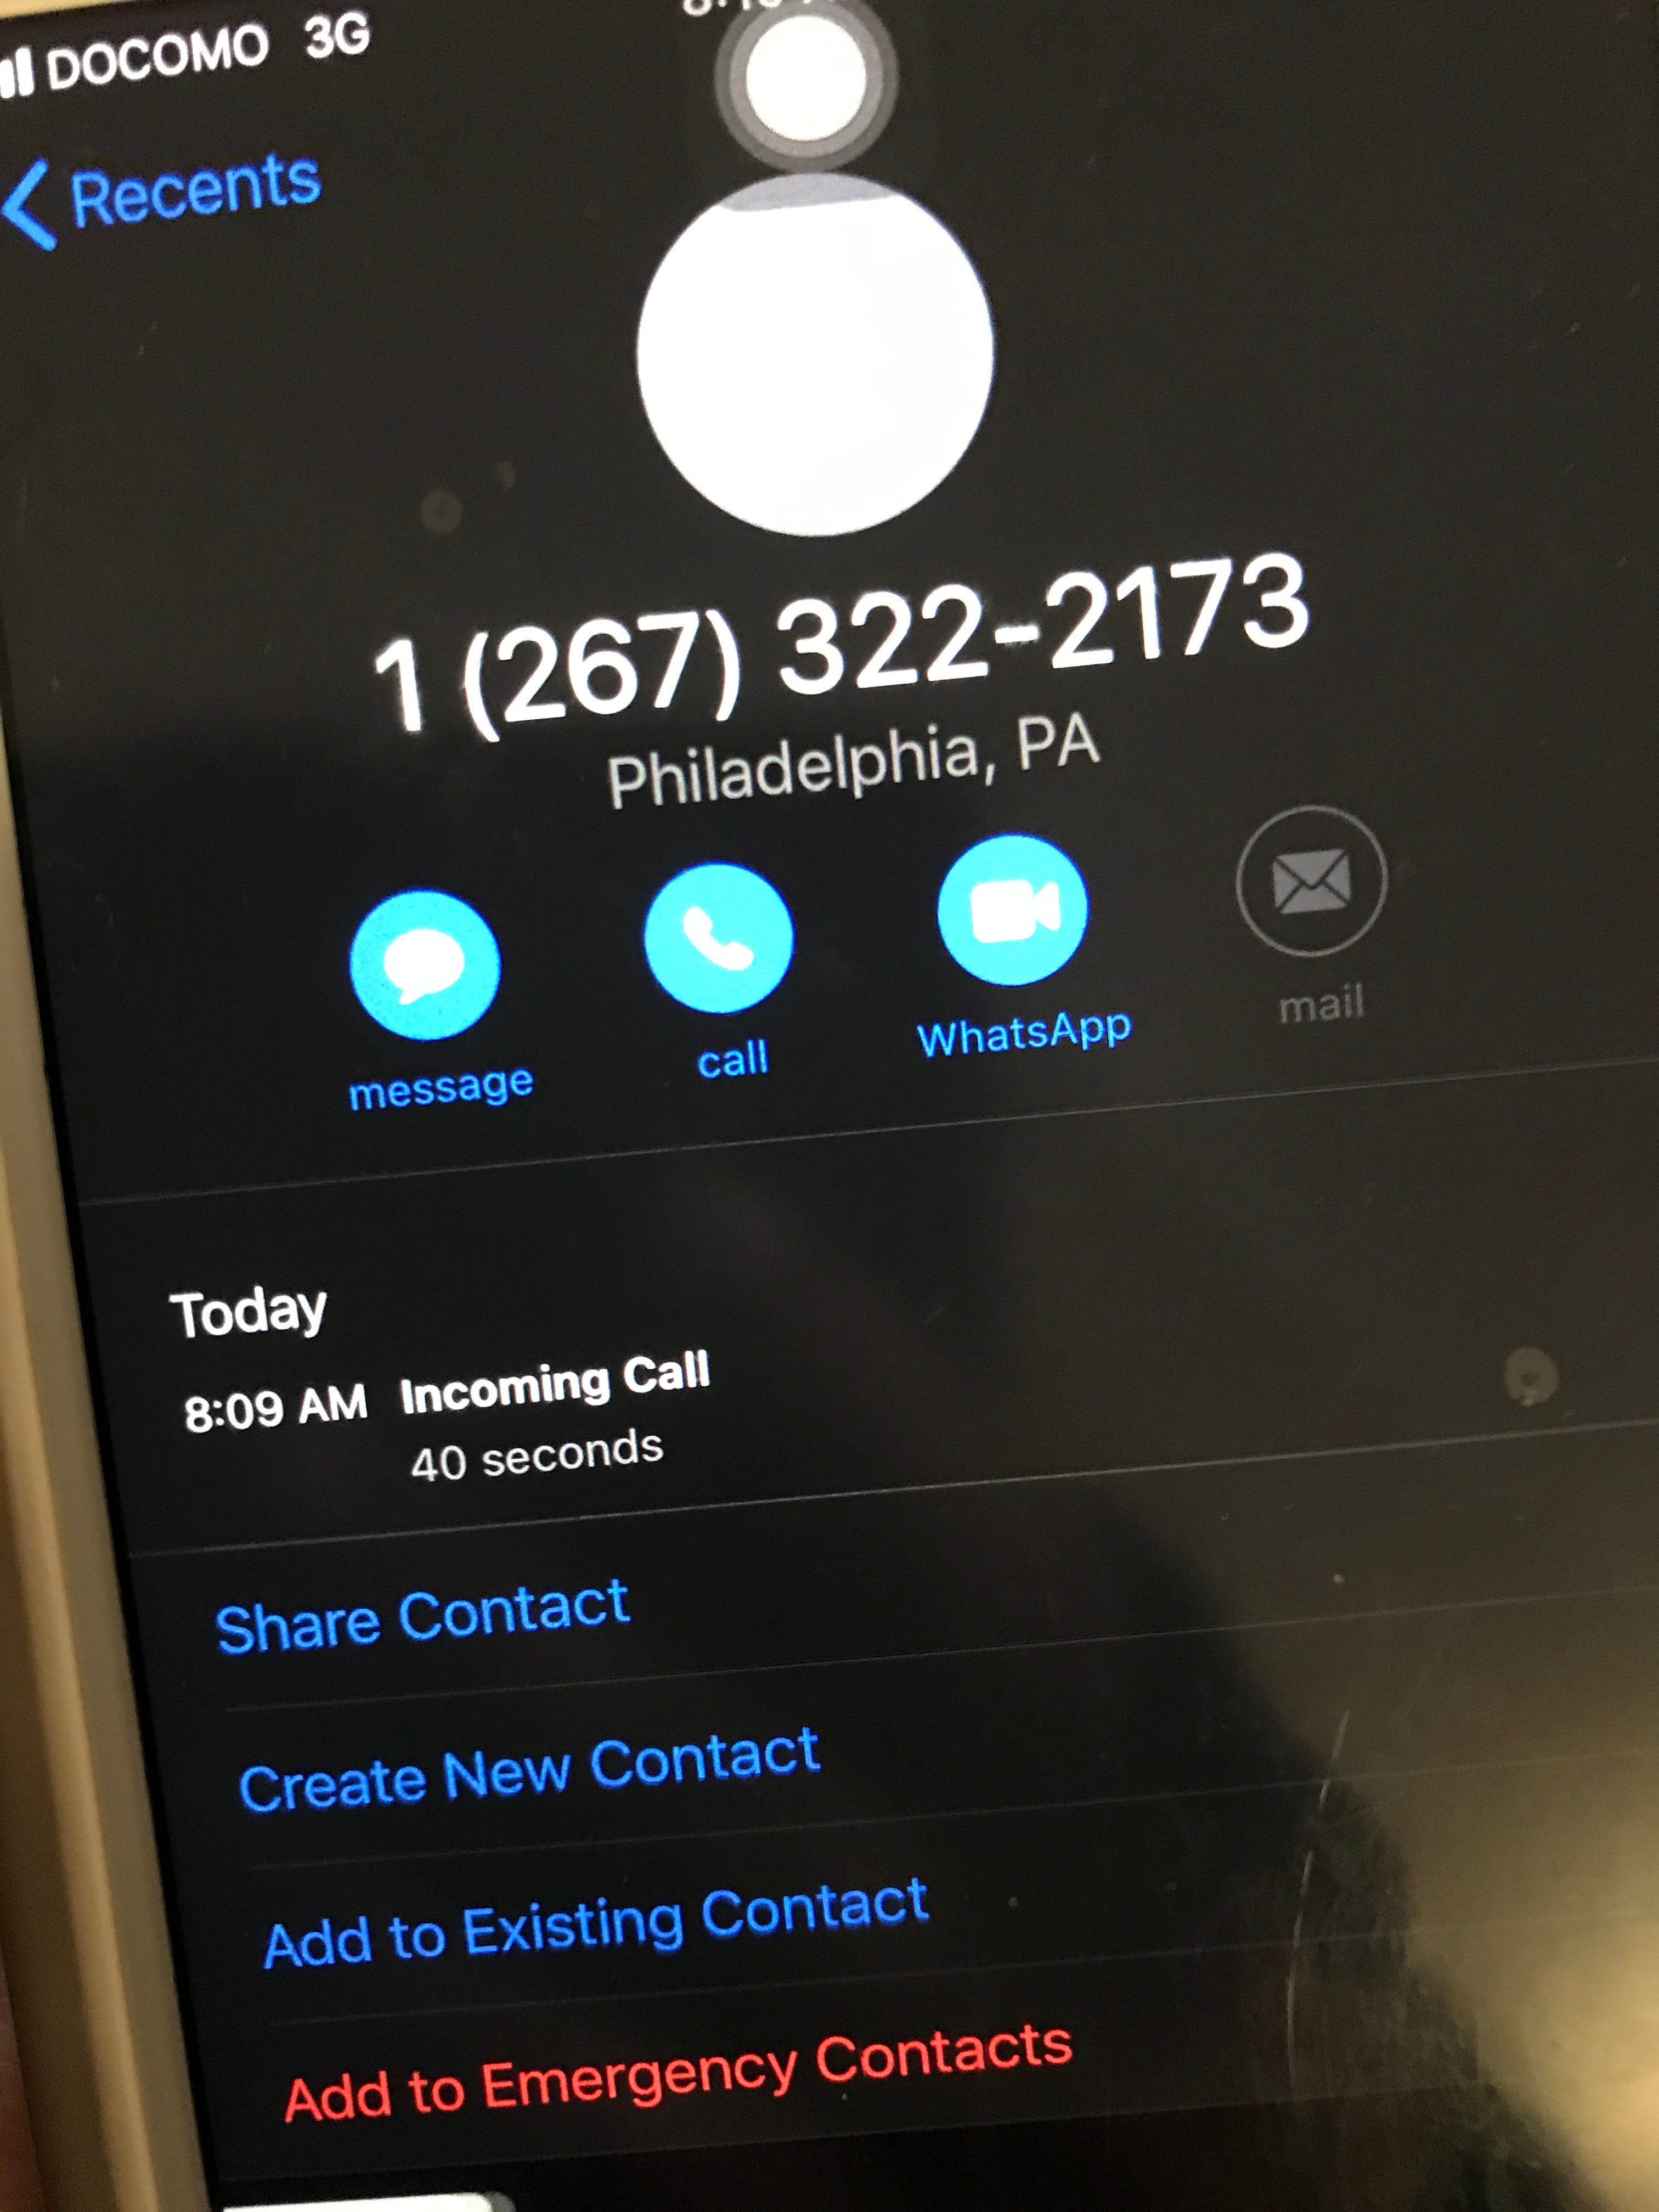 This and other spoofed phone numbers have been reported to authorities as part of an ongoing phone scam targeting Guam residents.